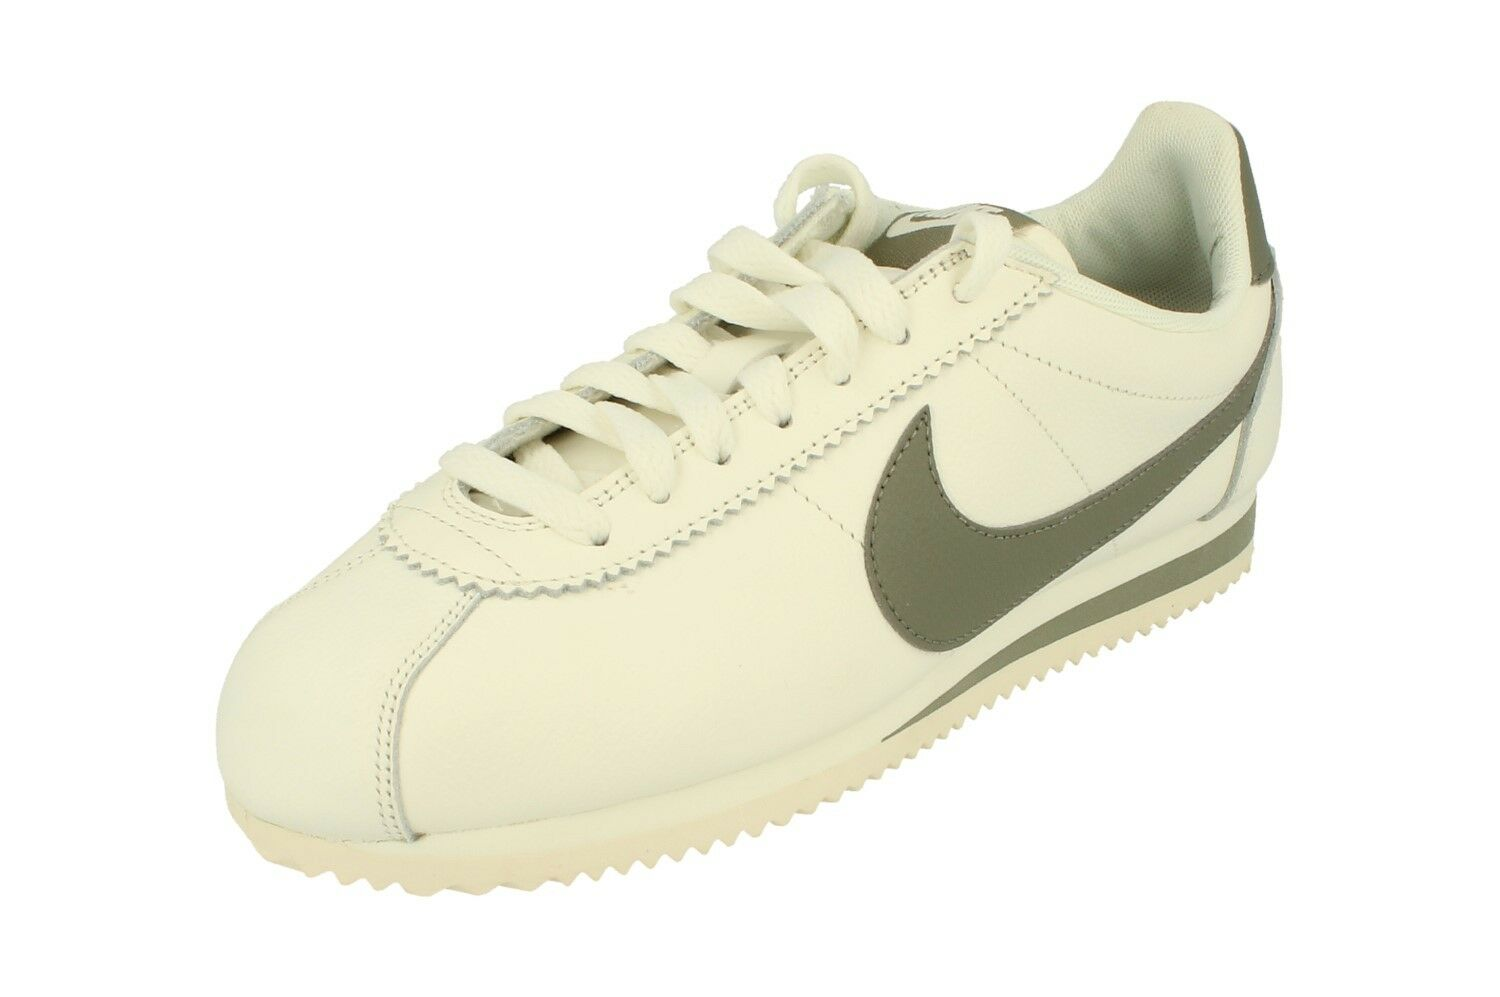 Nike Classic Cortez Leather Se Mens Running Trainers 861535 Sneakers Shoes 105